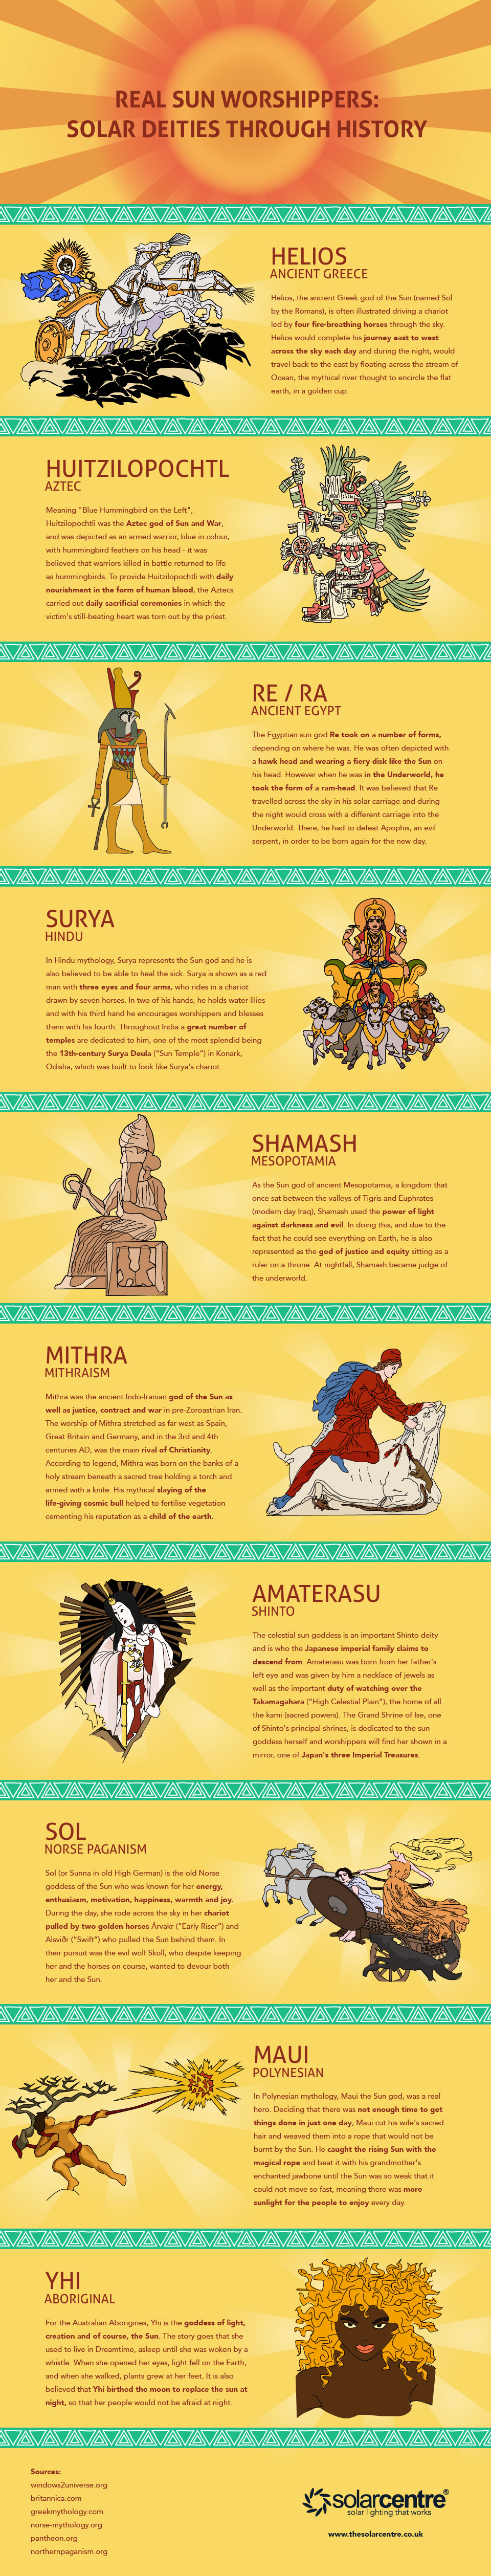 Stories of Sun Deities and Worship in Different Cultures - Infographic